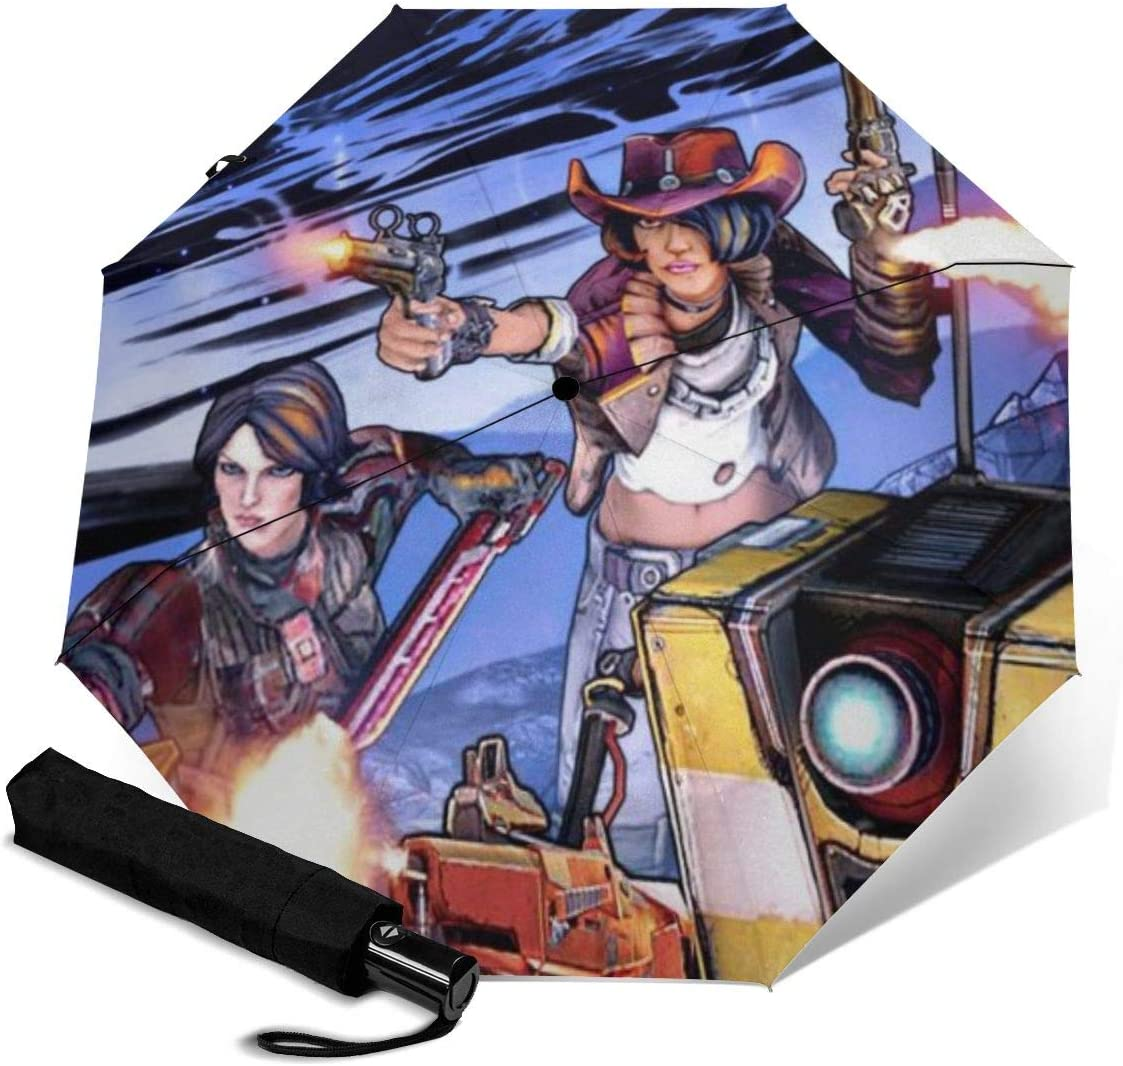 Borderlands Pre Sequel Playable Characters 3D Pattern PG Cloth Lightweight Foldable Tri-fold Umbrealla For Rain Sunshade Anti-UV,Qucik-dry Wind Resistance Automatic Umbrellas